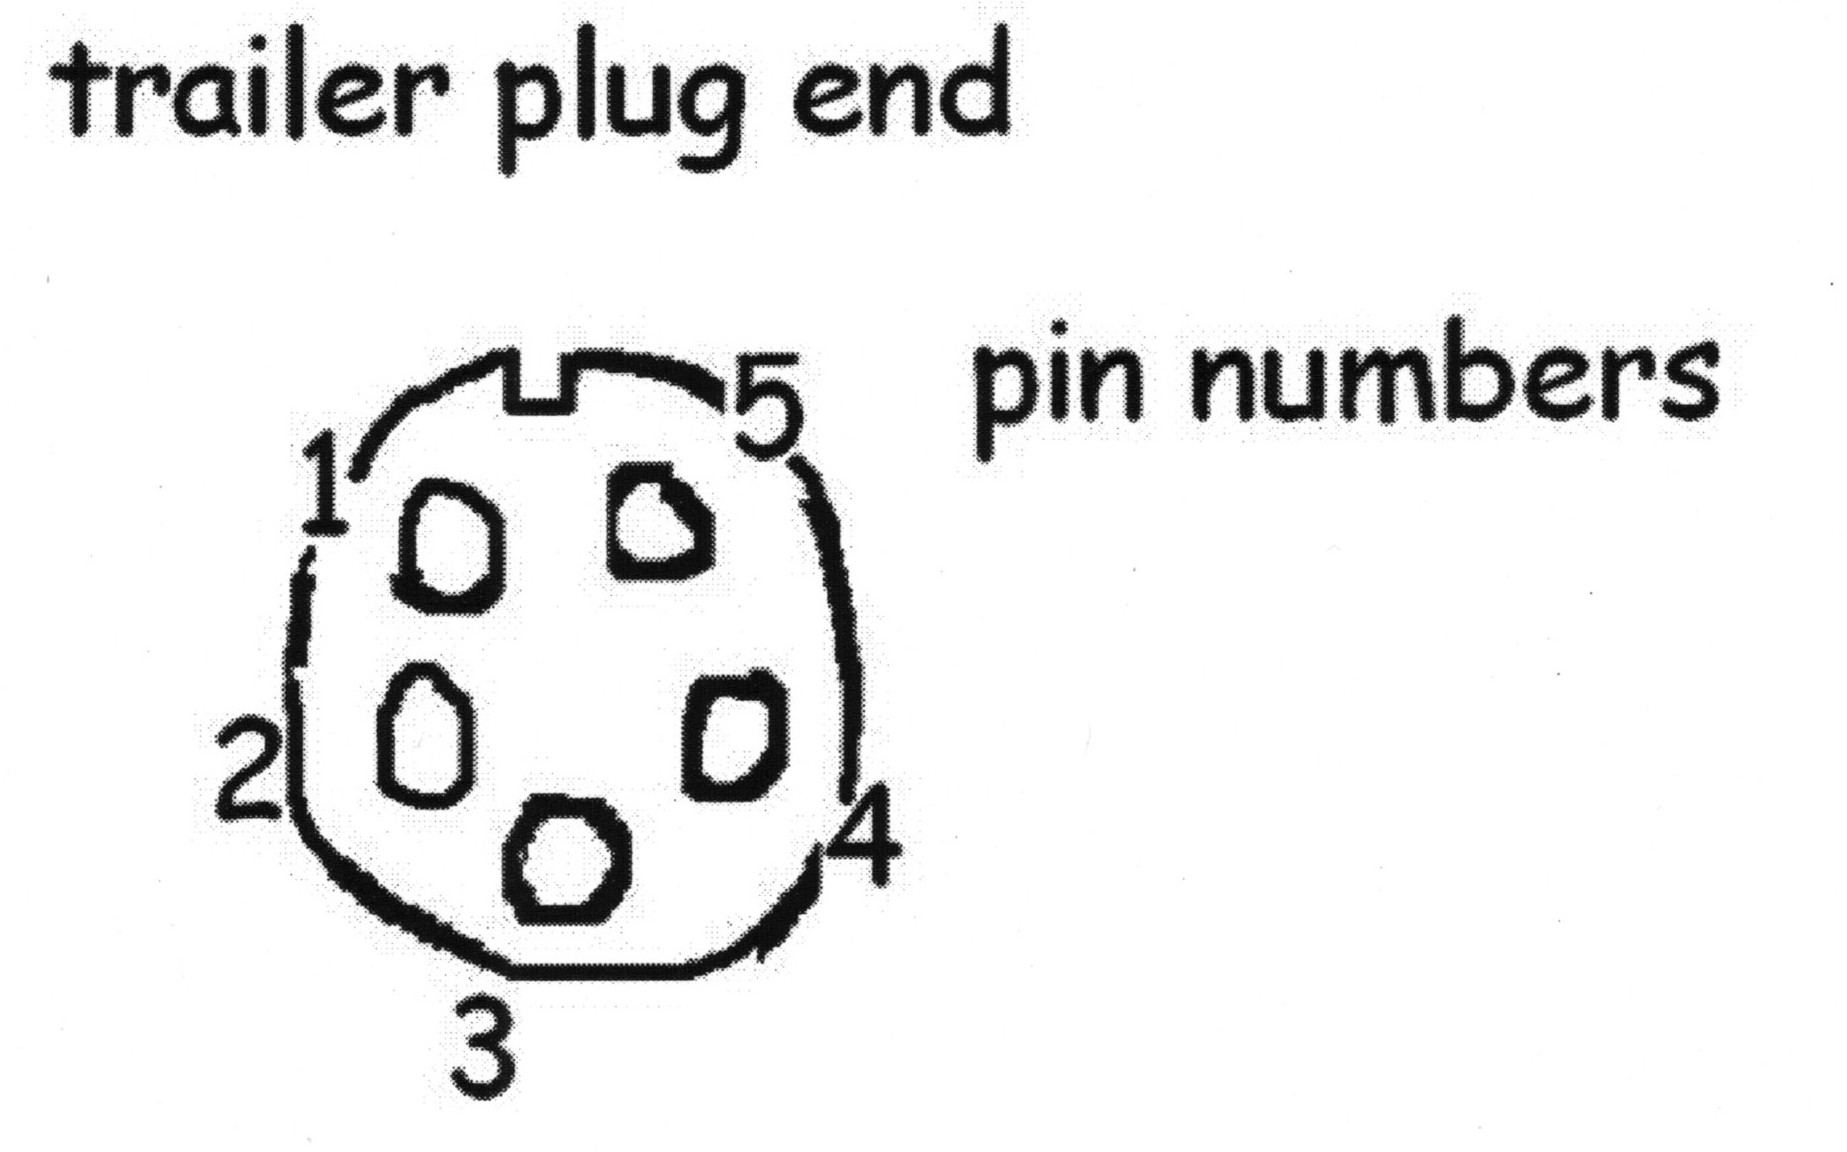 5 pin round trailer plug wiring diagram fill in the blank animal cell timeout and easy camper slipstream motorcycle campers